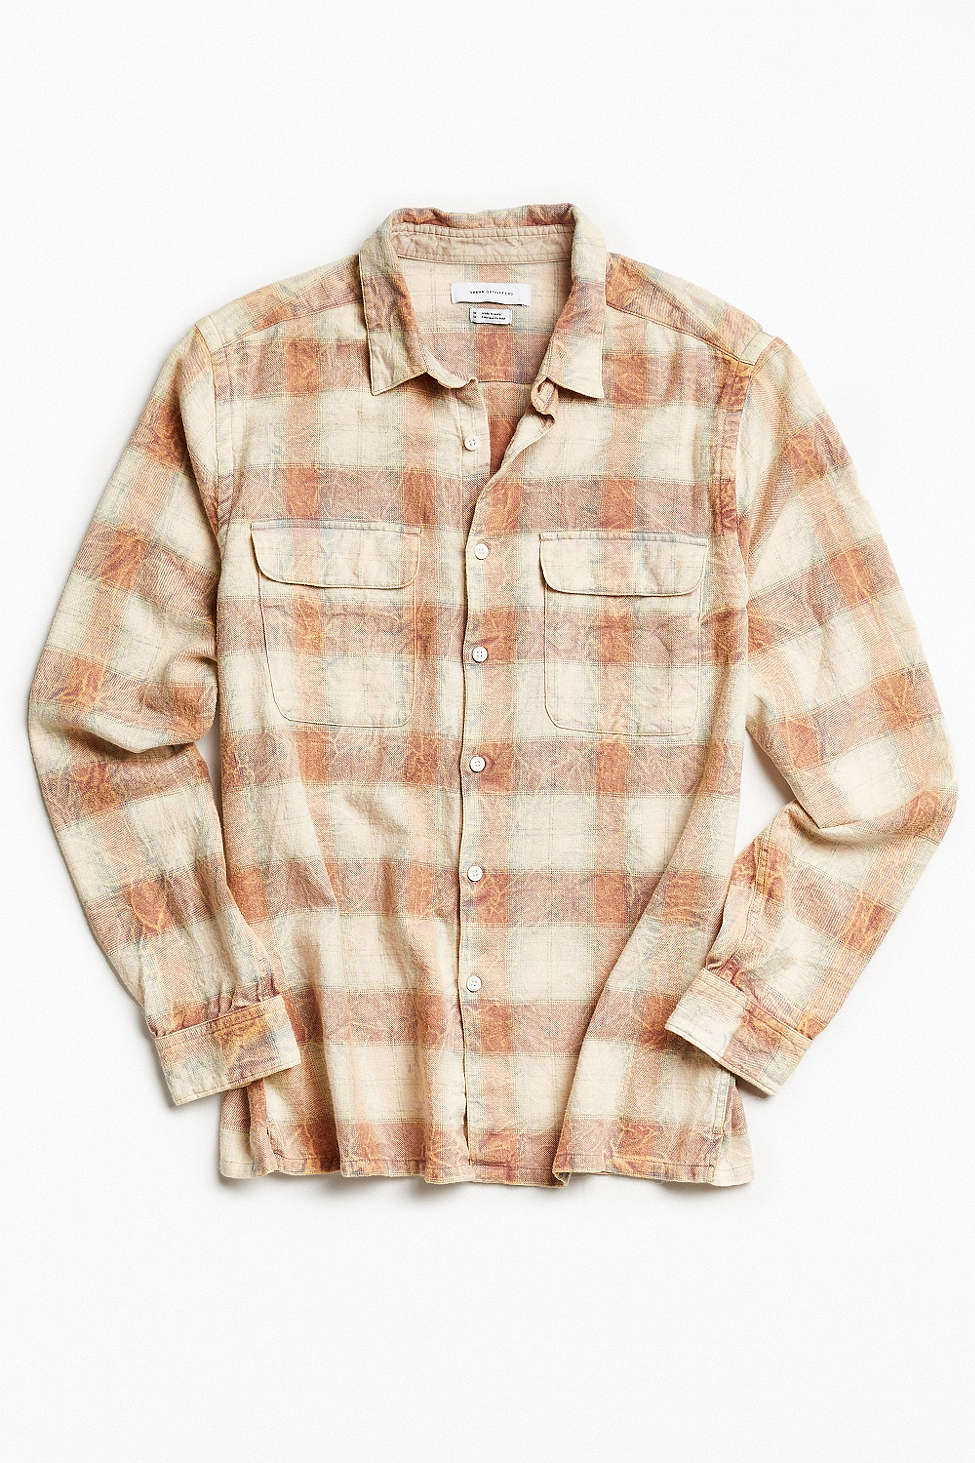 URBAN OUTFITTERS: ELISO $49.00